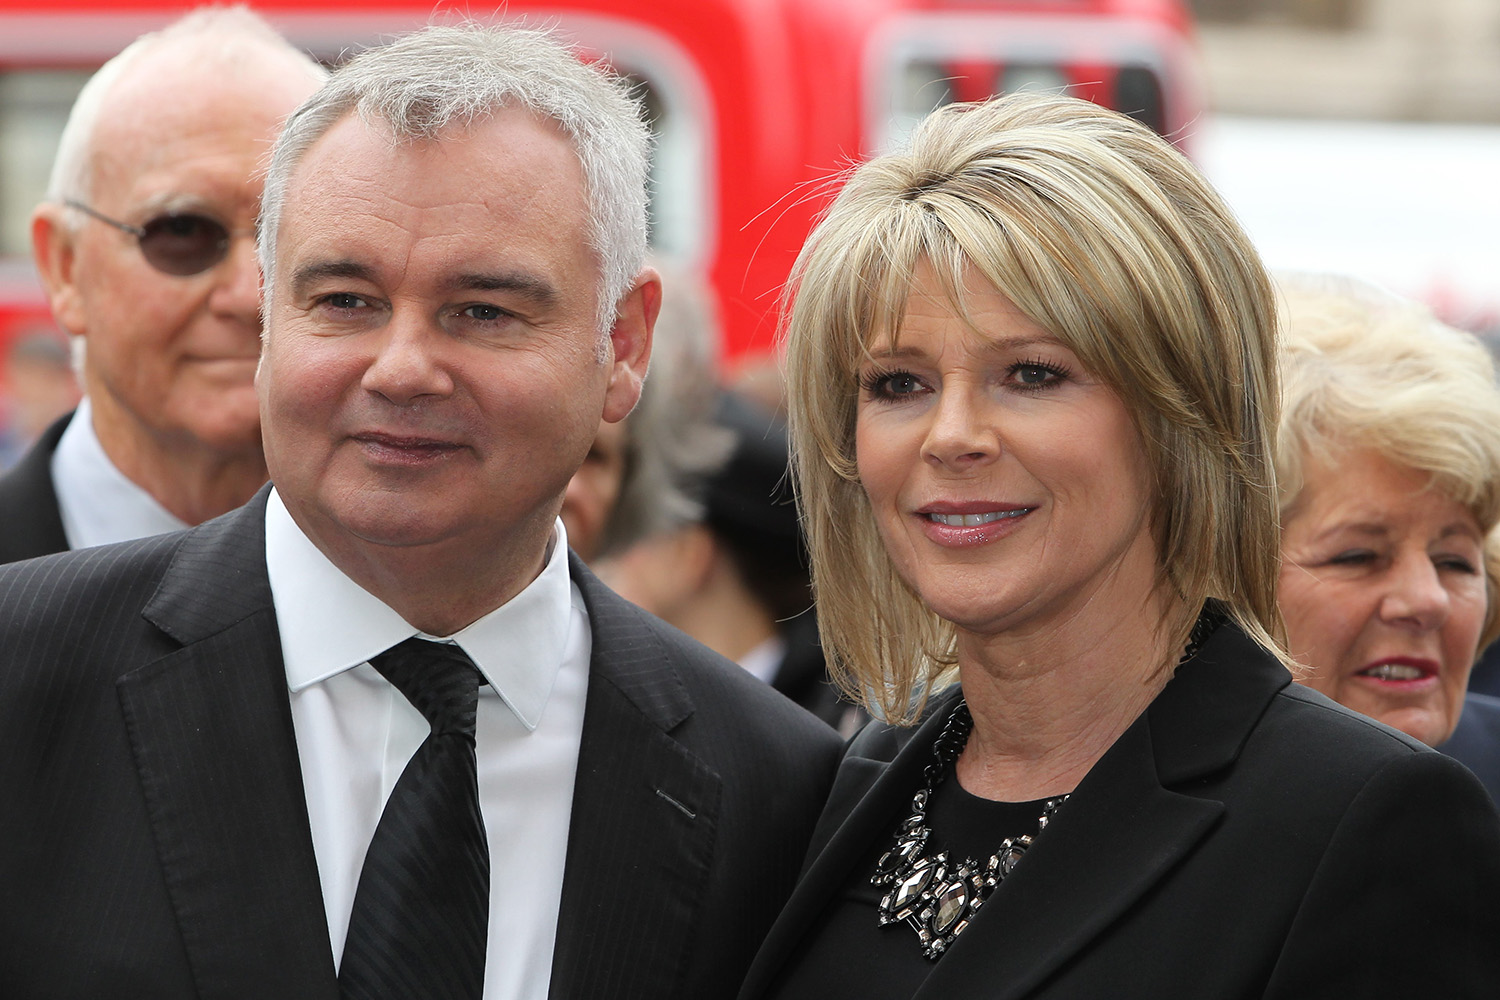 Eamonn Holmes reveals wife Ruth Langford's 'guilt' over late sister who was 'tortured by depression'